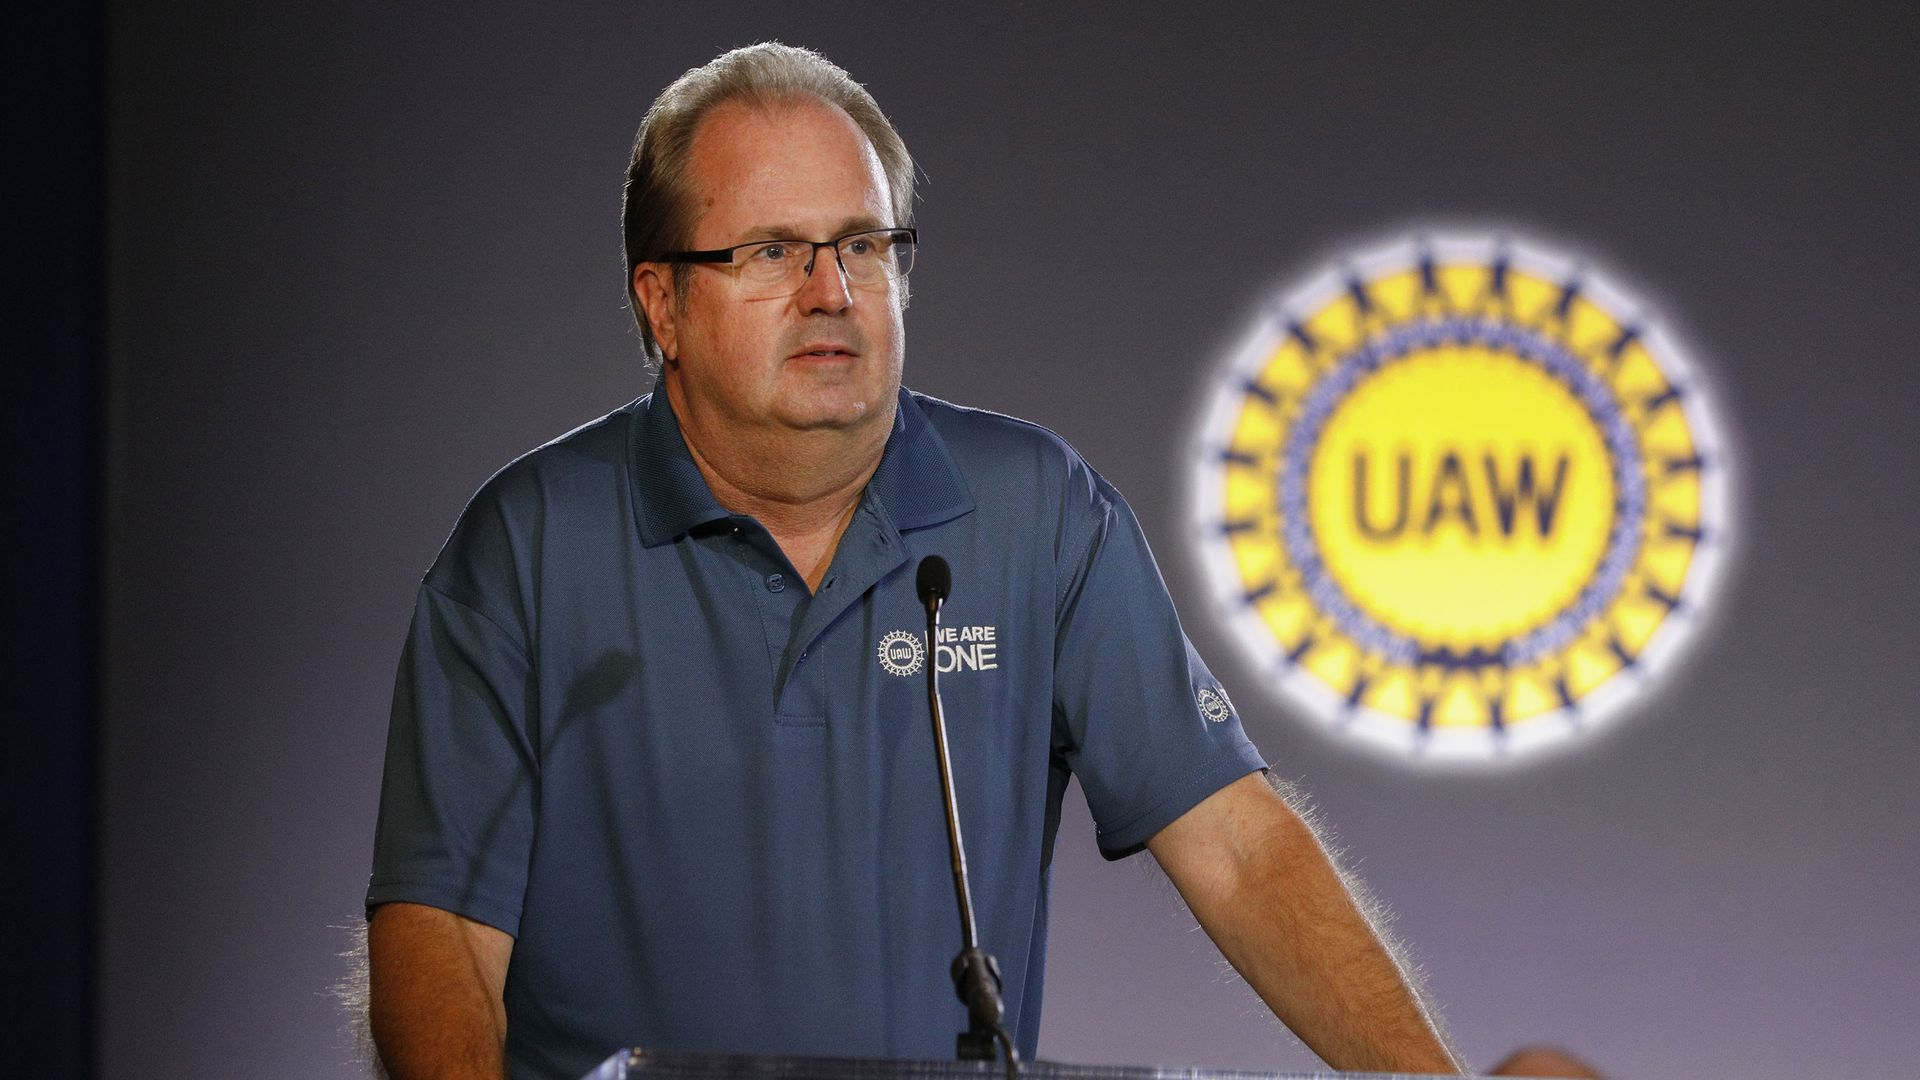 In this image, UAW president stands in front of a clear plastic podium.